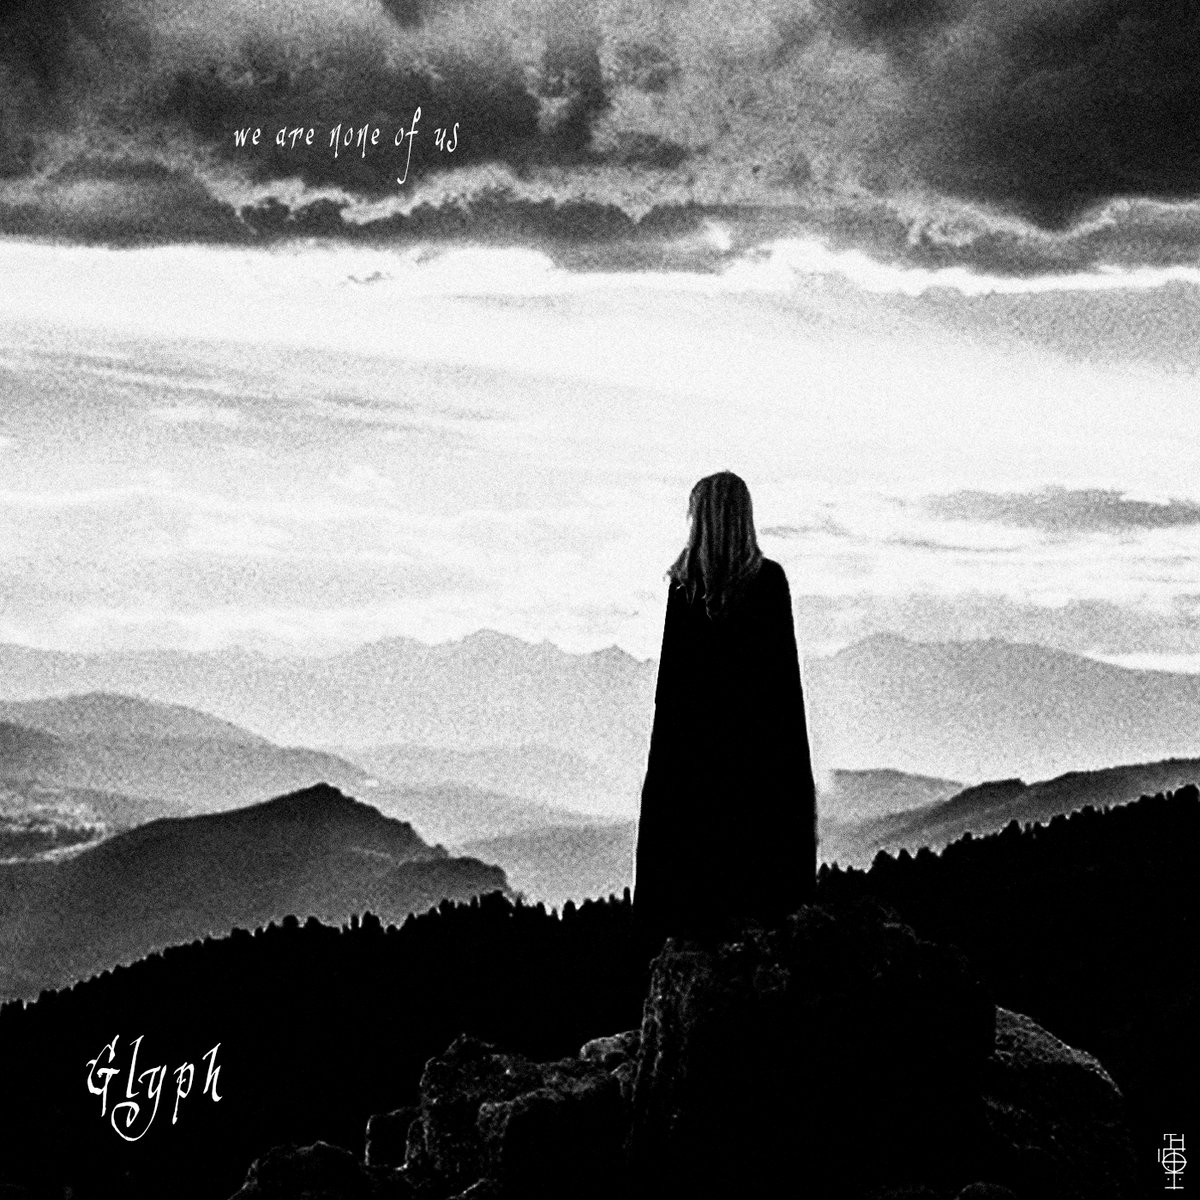 Glyph - We Are None Of Us (2021)